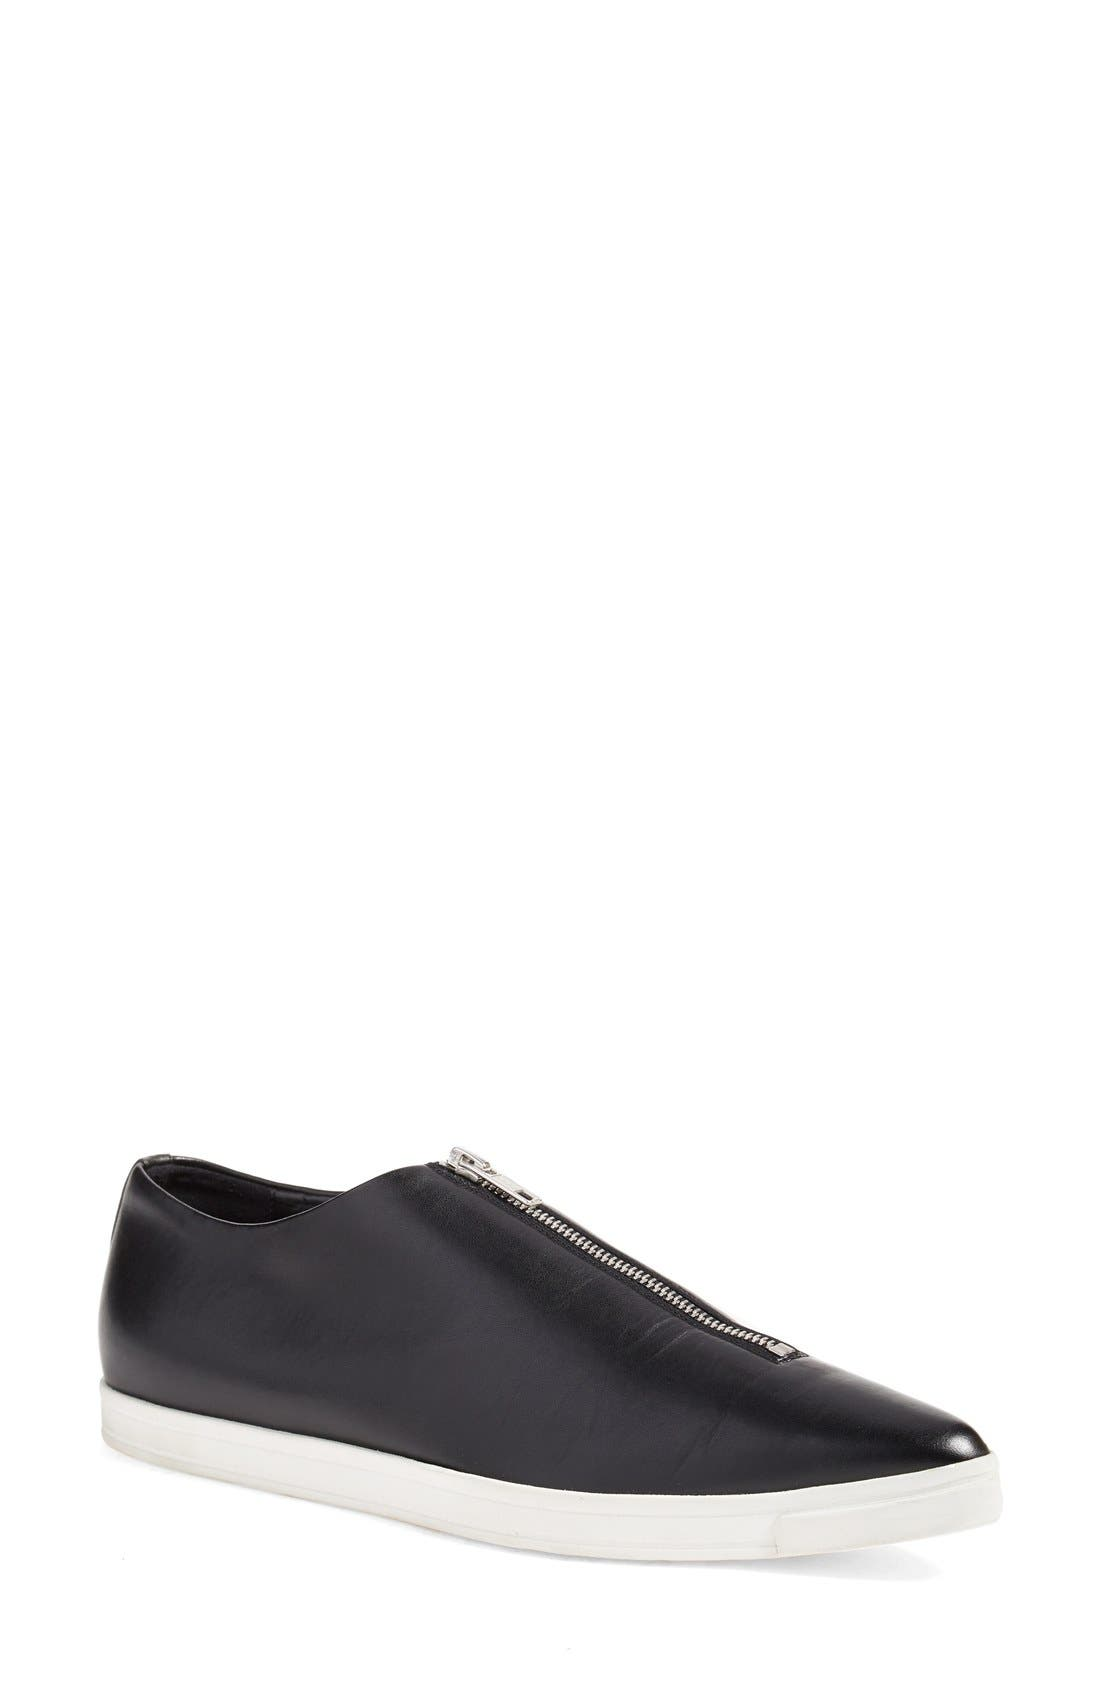 STELLA MCCARTNEY Pointed Toe Zip Loafer